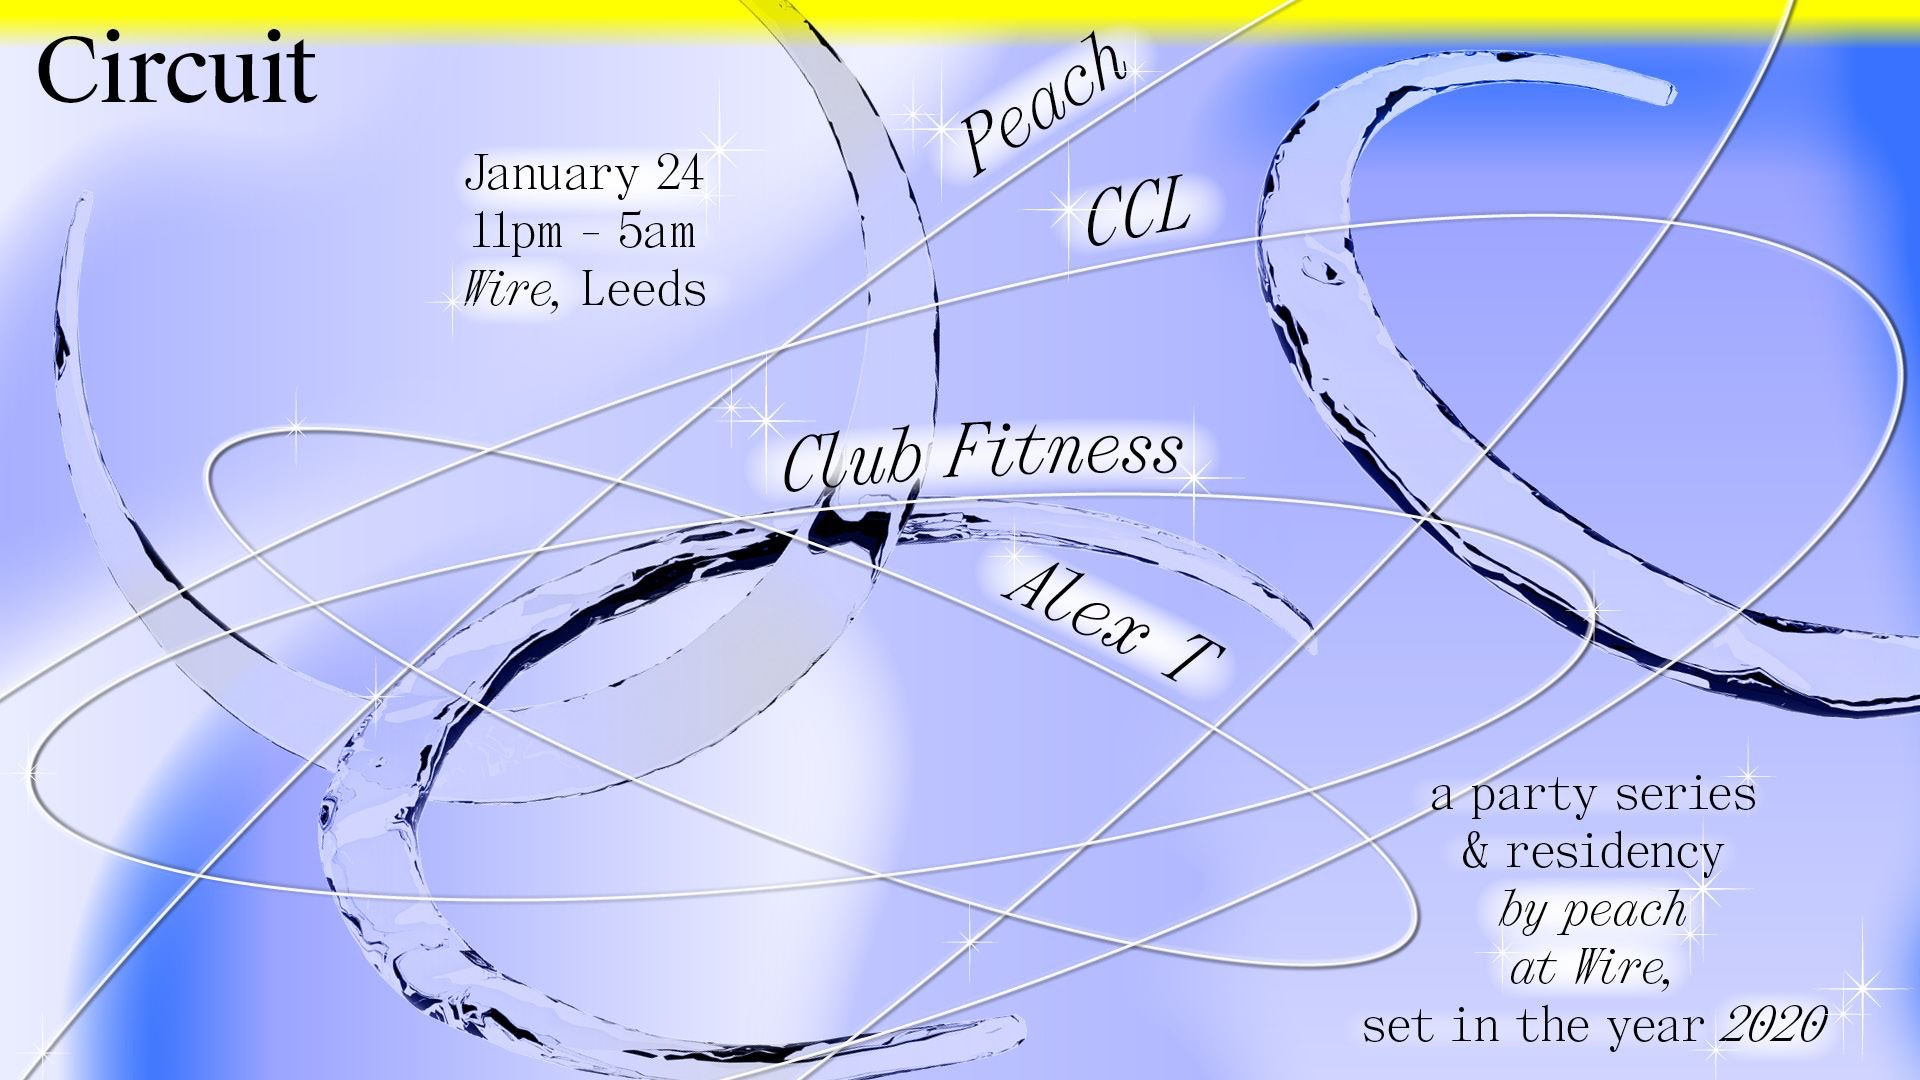 Circuit: Peach, CCL, Club Fitness & Alex T